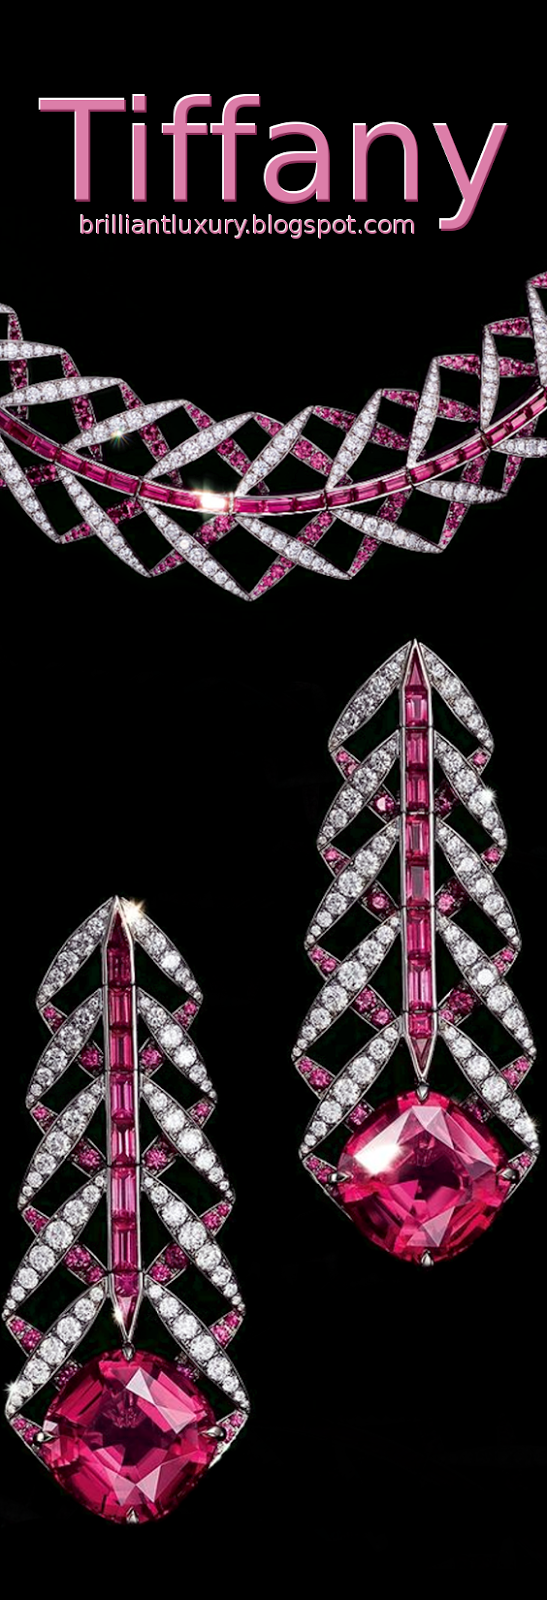 Brilliant Luxury ♦ Tiffany platinium pink sapphire & diamond necklace and earrings